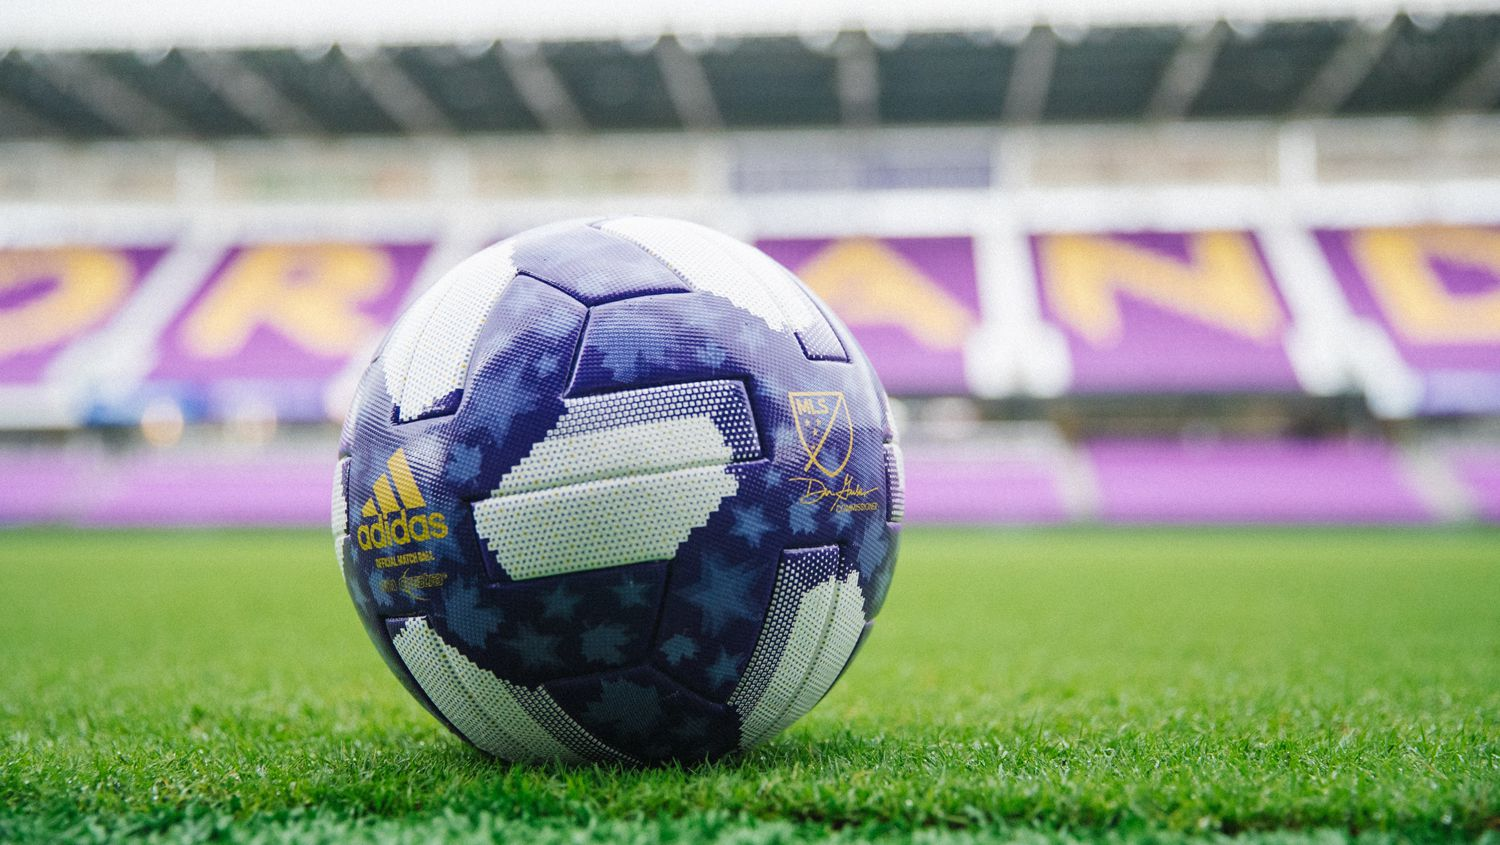 The 2019 MLS All-Star Game Ball.